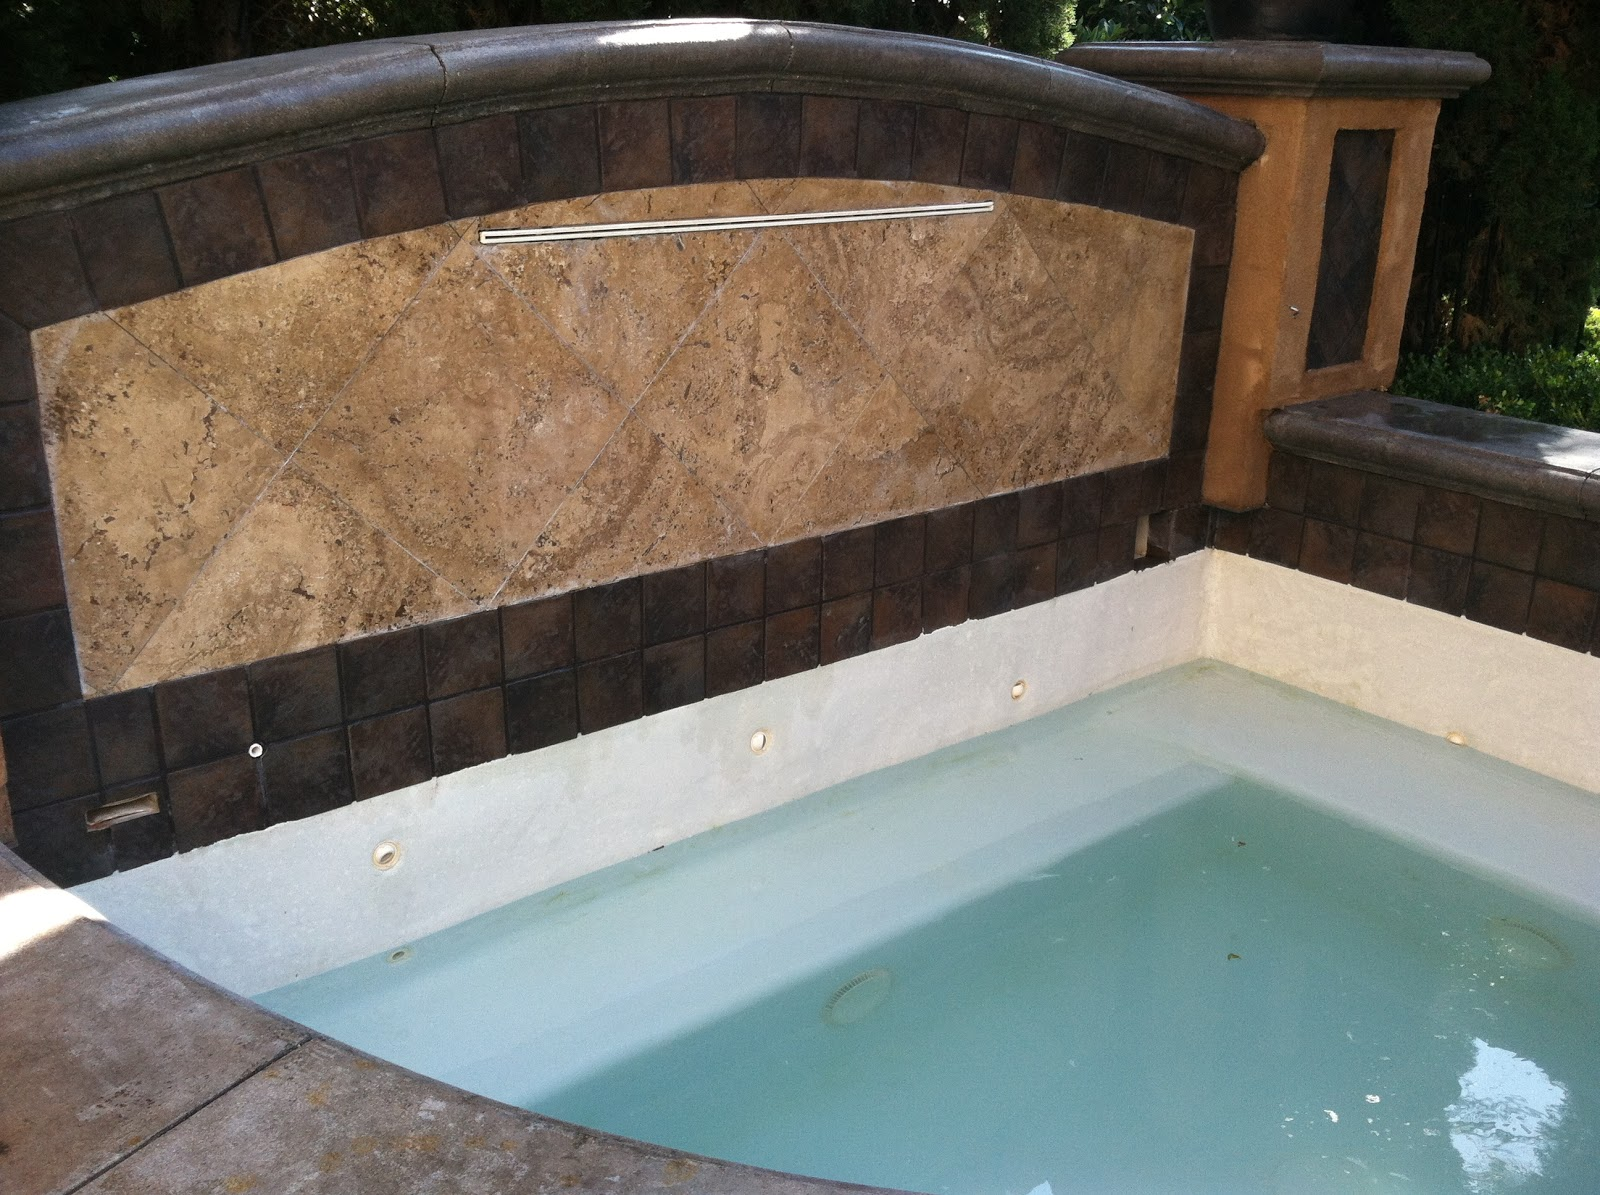 Oc La Palm Springs Riverside Pool Tile Cleaning And Repair